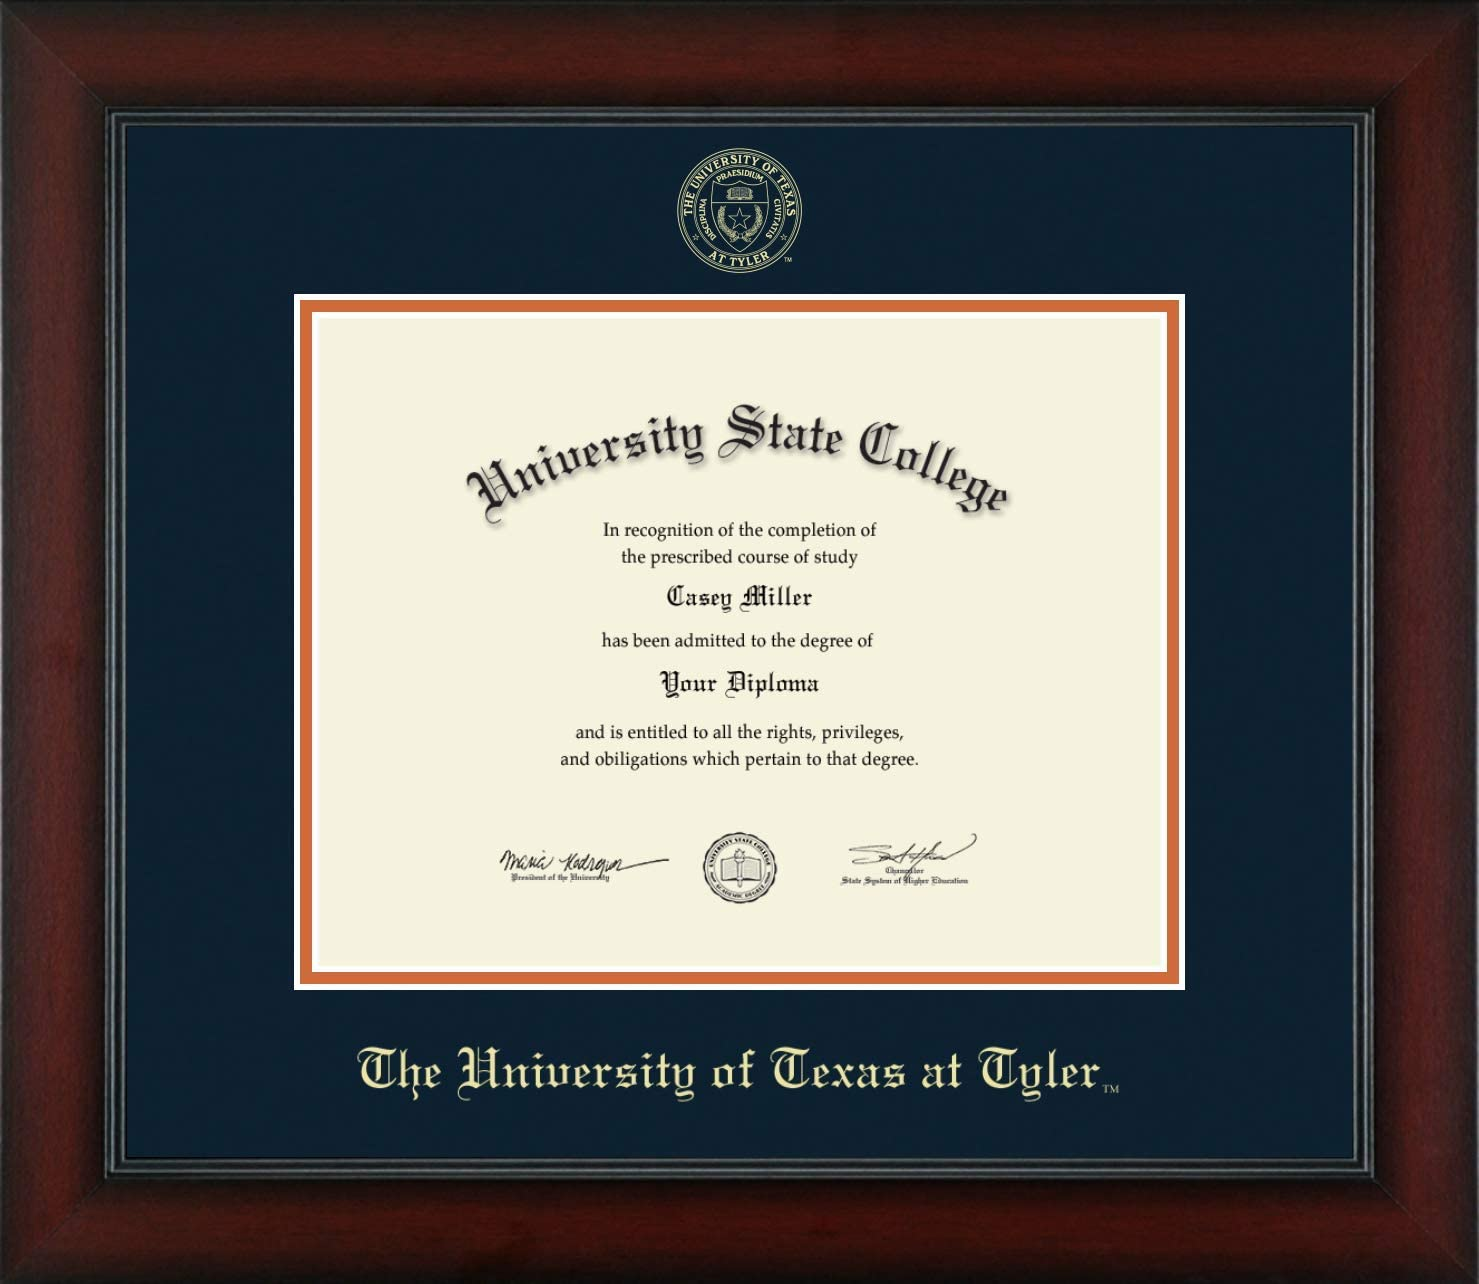 The University of Texas at Same day shipping Tyler Em Officially - gift Licensed Gold